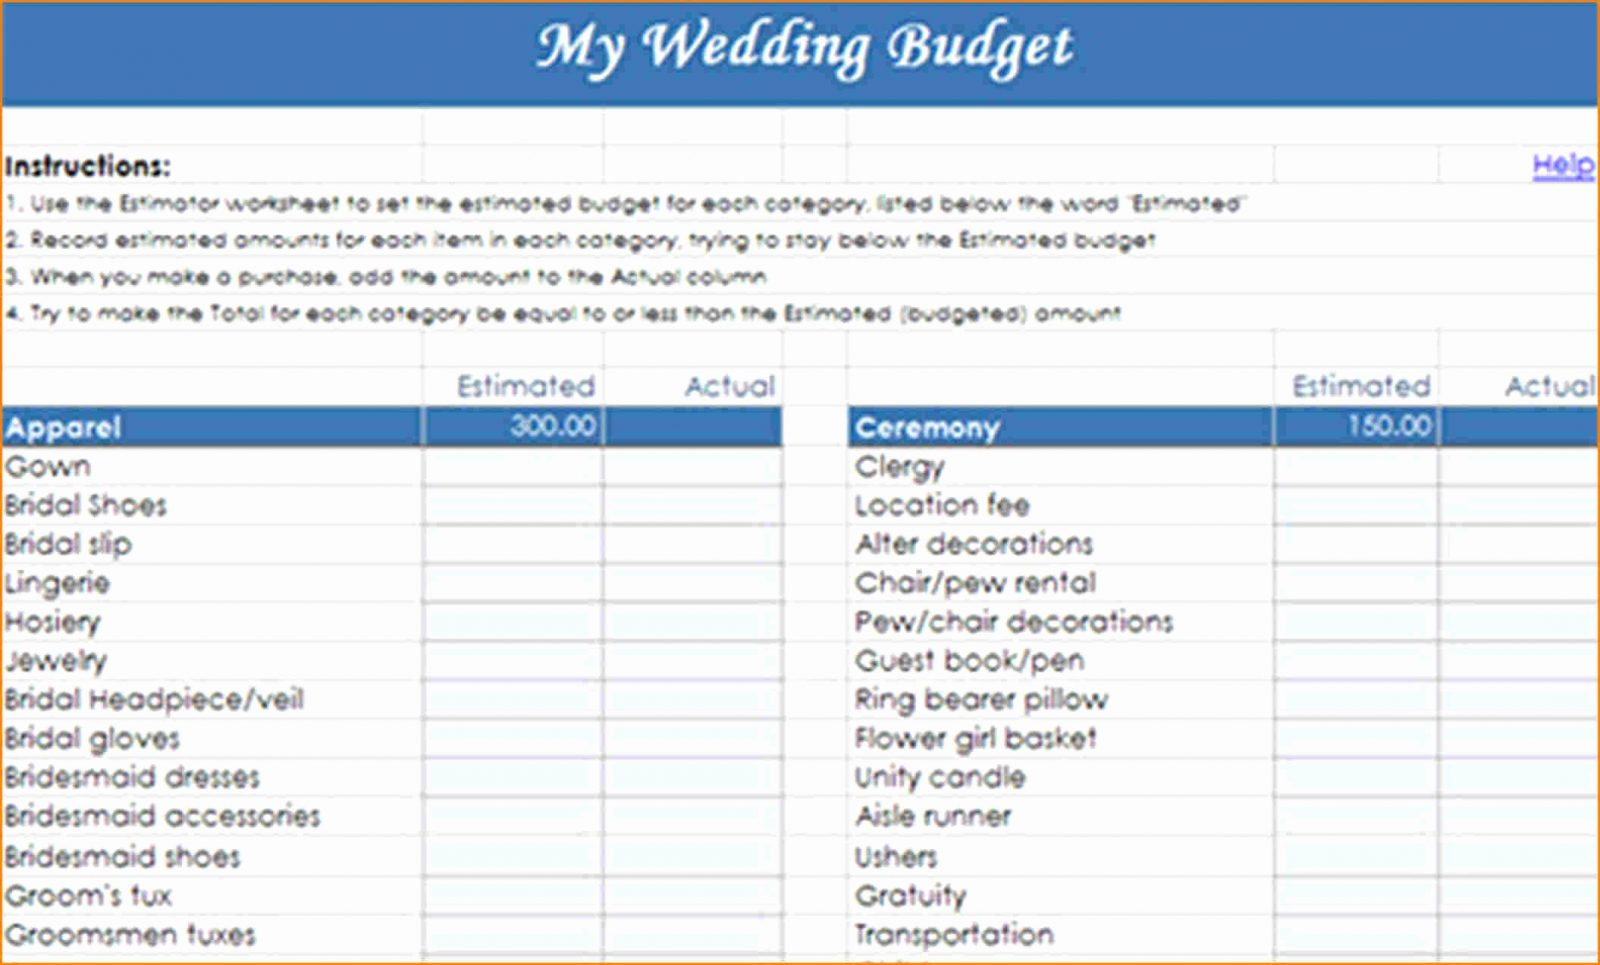 Candle Making Cost Spreadsheet Intended For Wedding Budget Worksheet Template Planner Example Of Spreadsheet Candle Making Cost Spreadsheet Google Spreadshee Google Spreadshee candle making cost spreadsheet